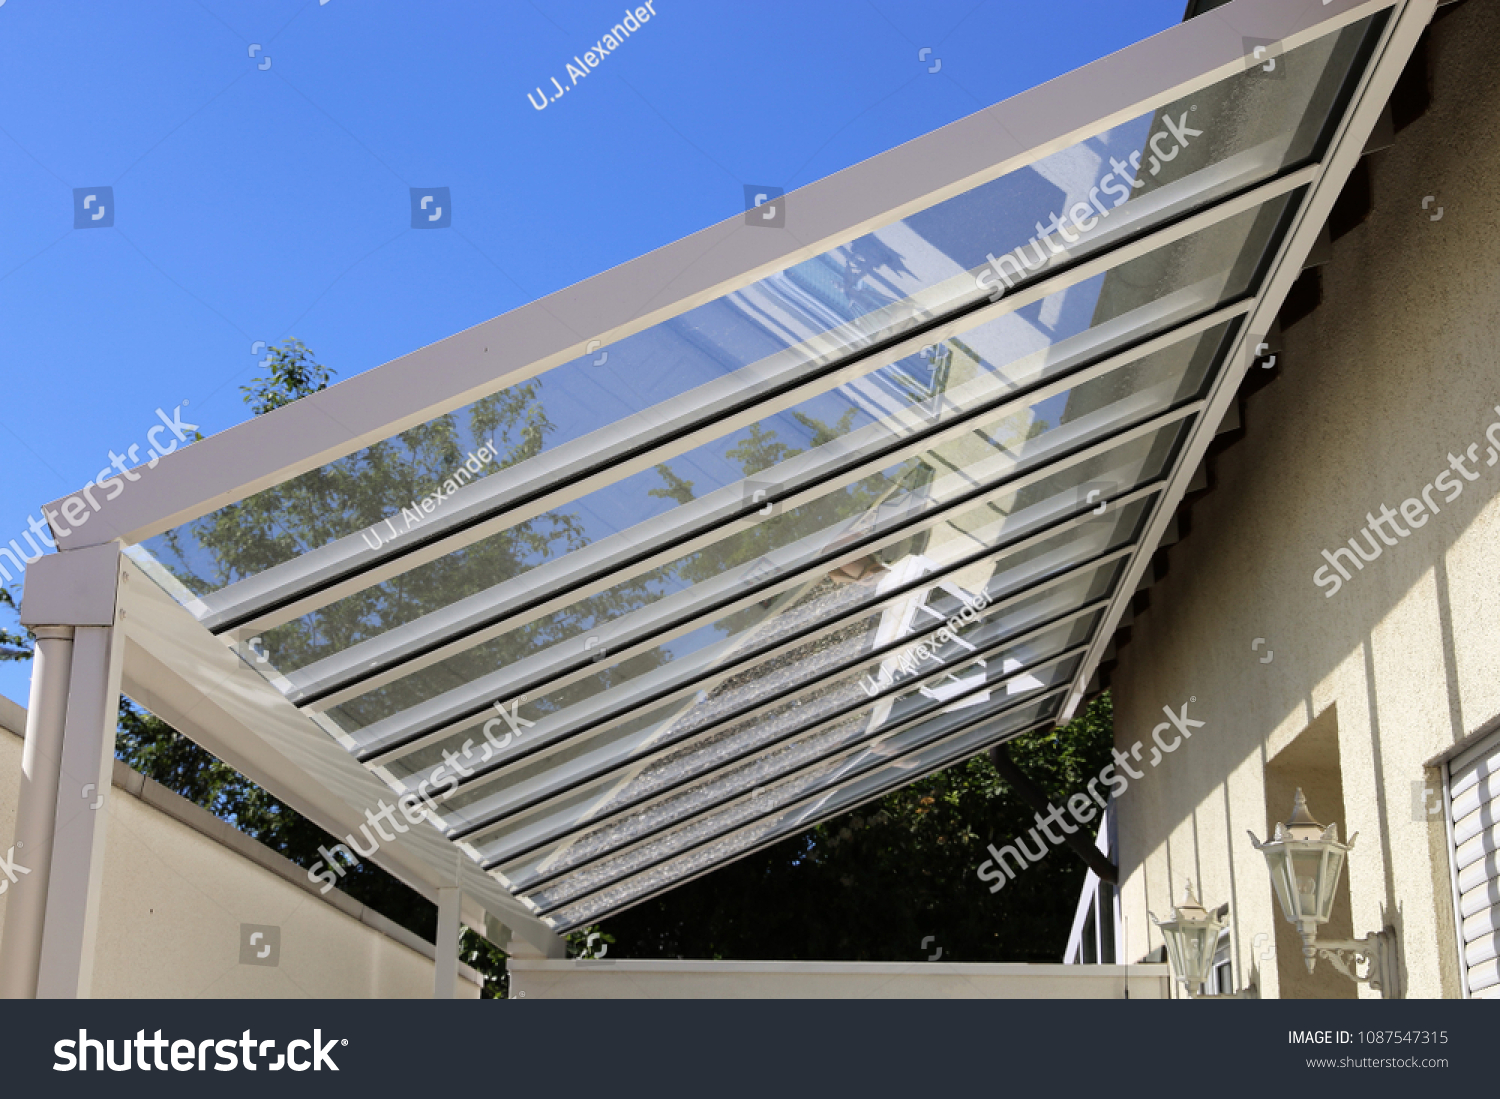 Courtyard canopy with glass #1087547315